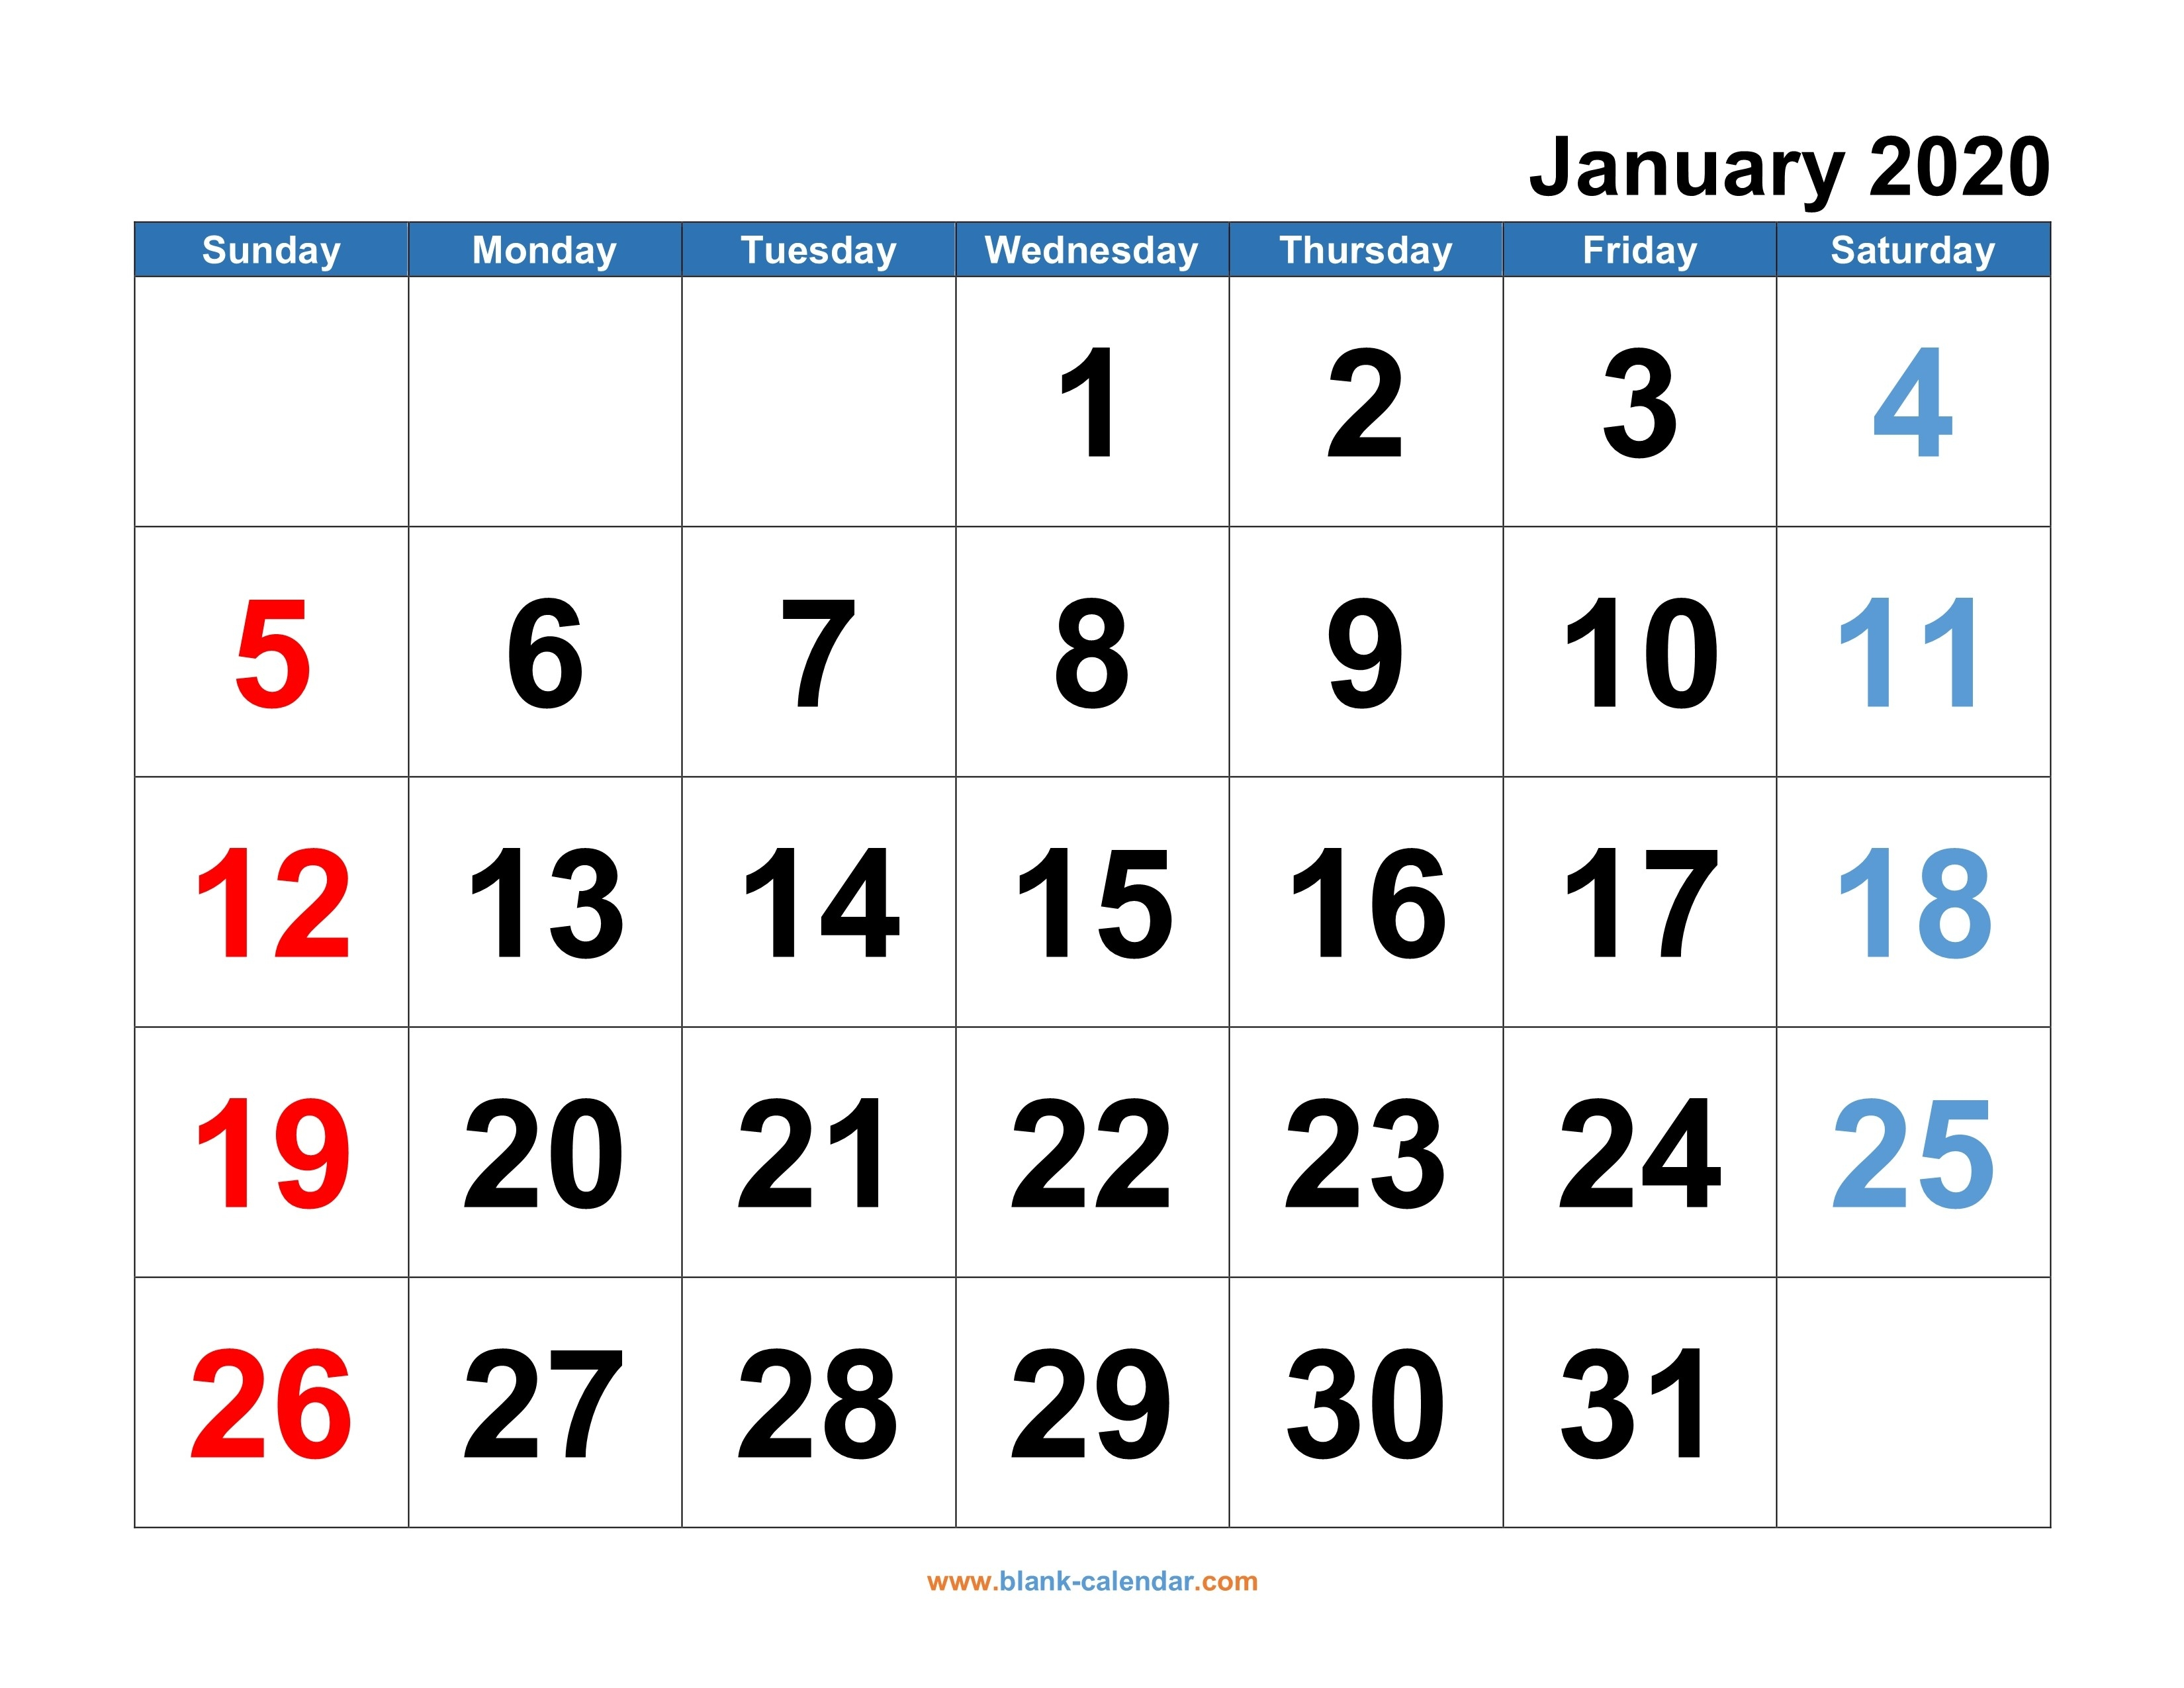 Monthly Calendar 2020 | Free Download, Editable And Printable-Calendar Word 2020 Microsoft Word Monthly